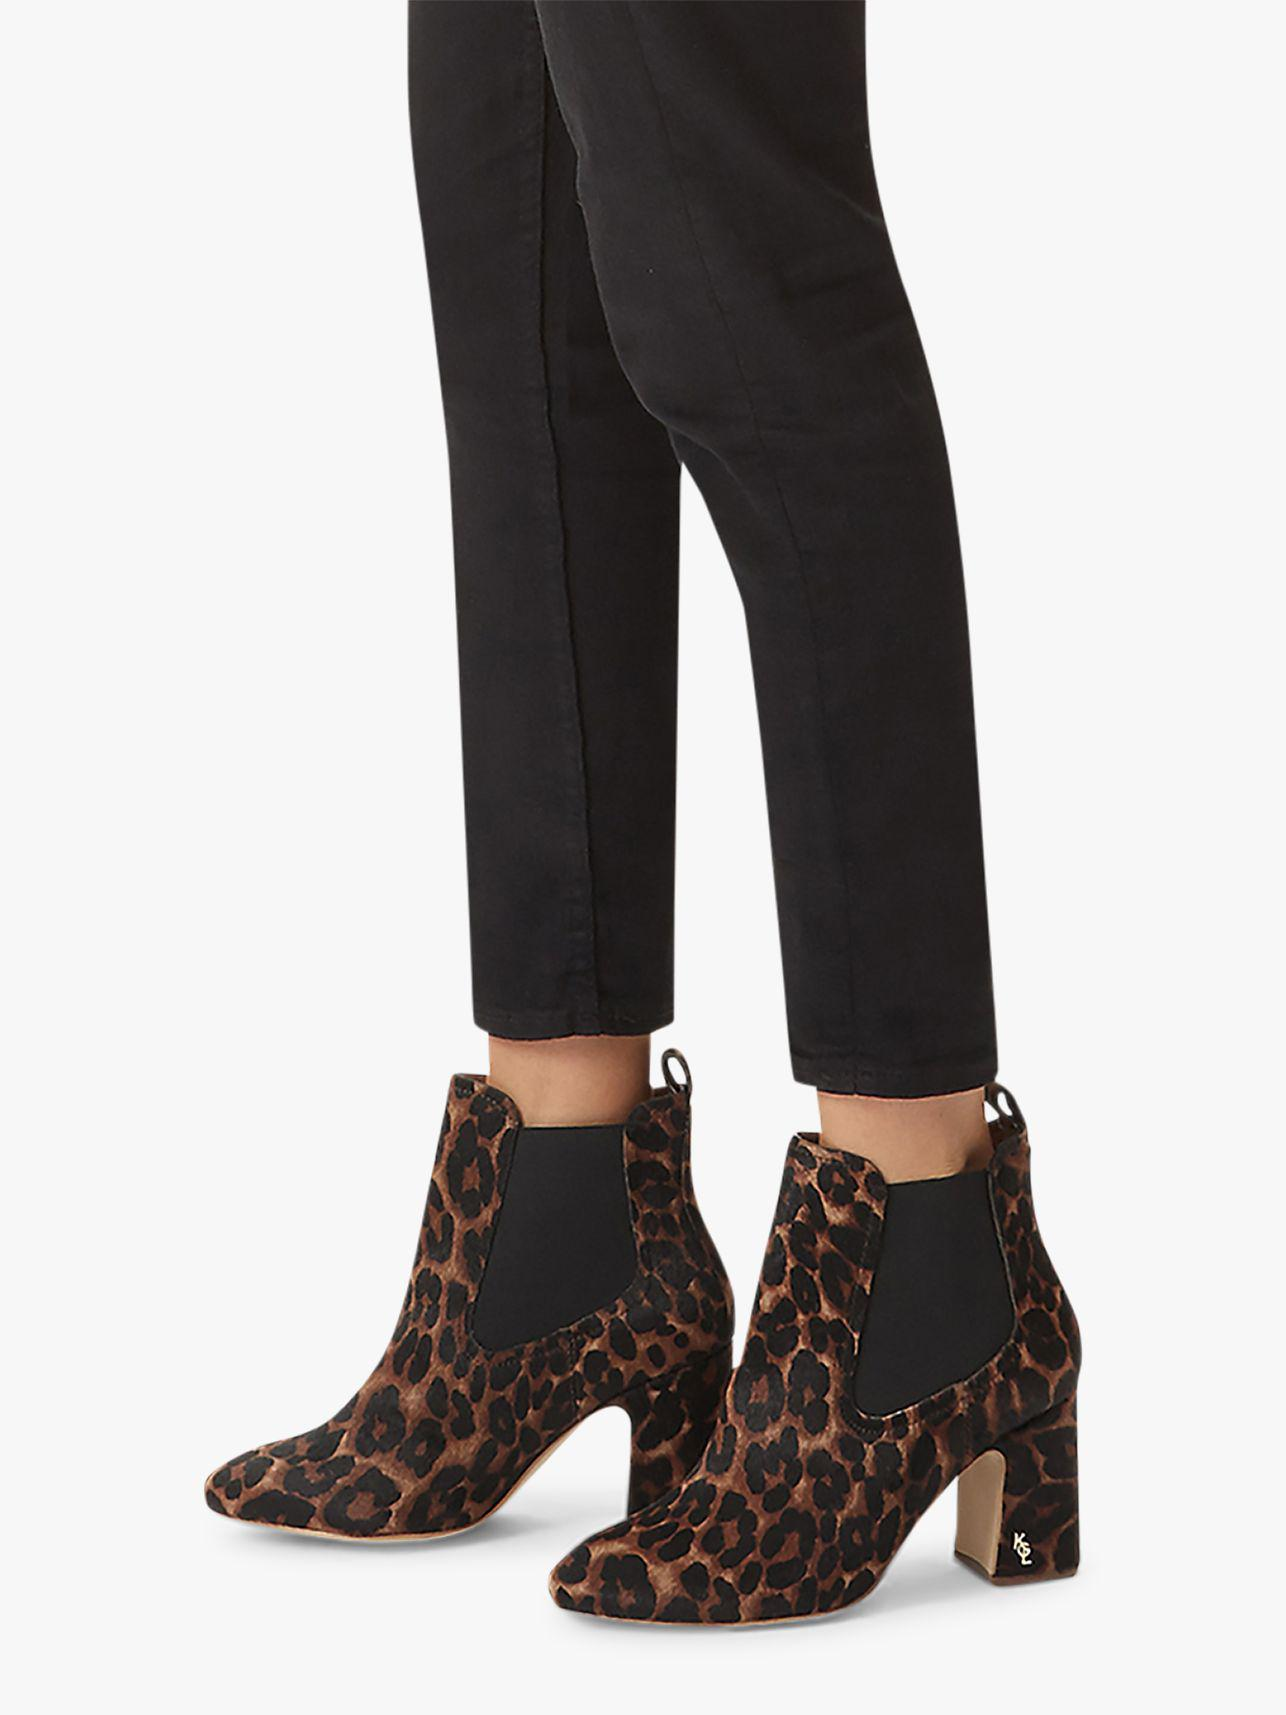 aef58408a8db Kurt Geiger Raylan Block Heeled Ankle Boots in Black - Lyst